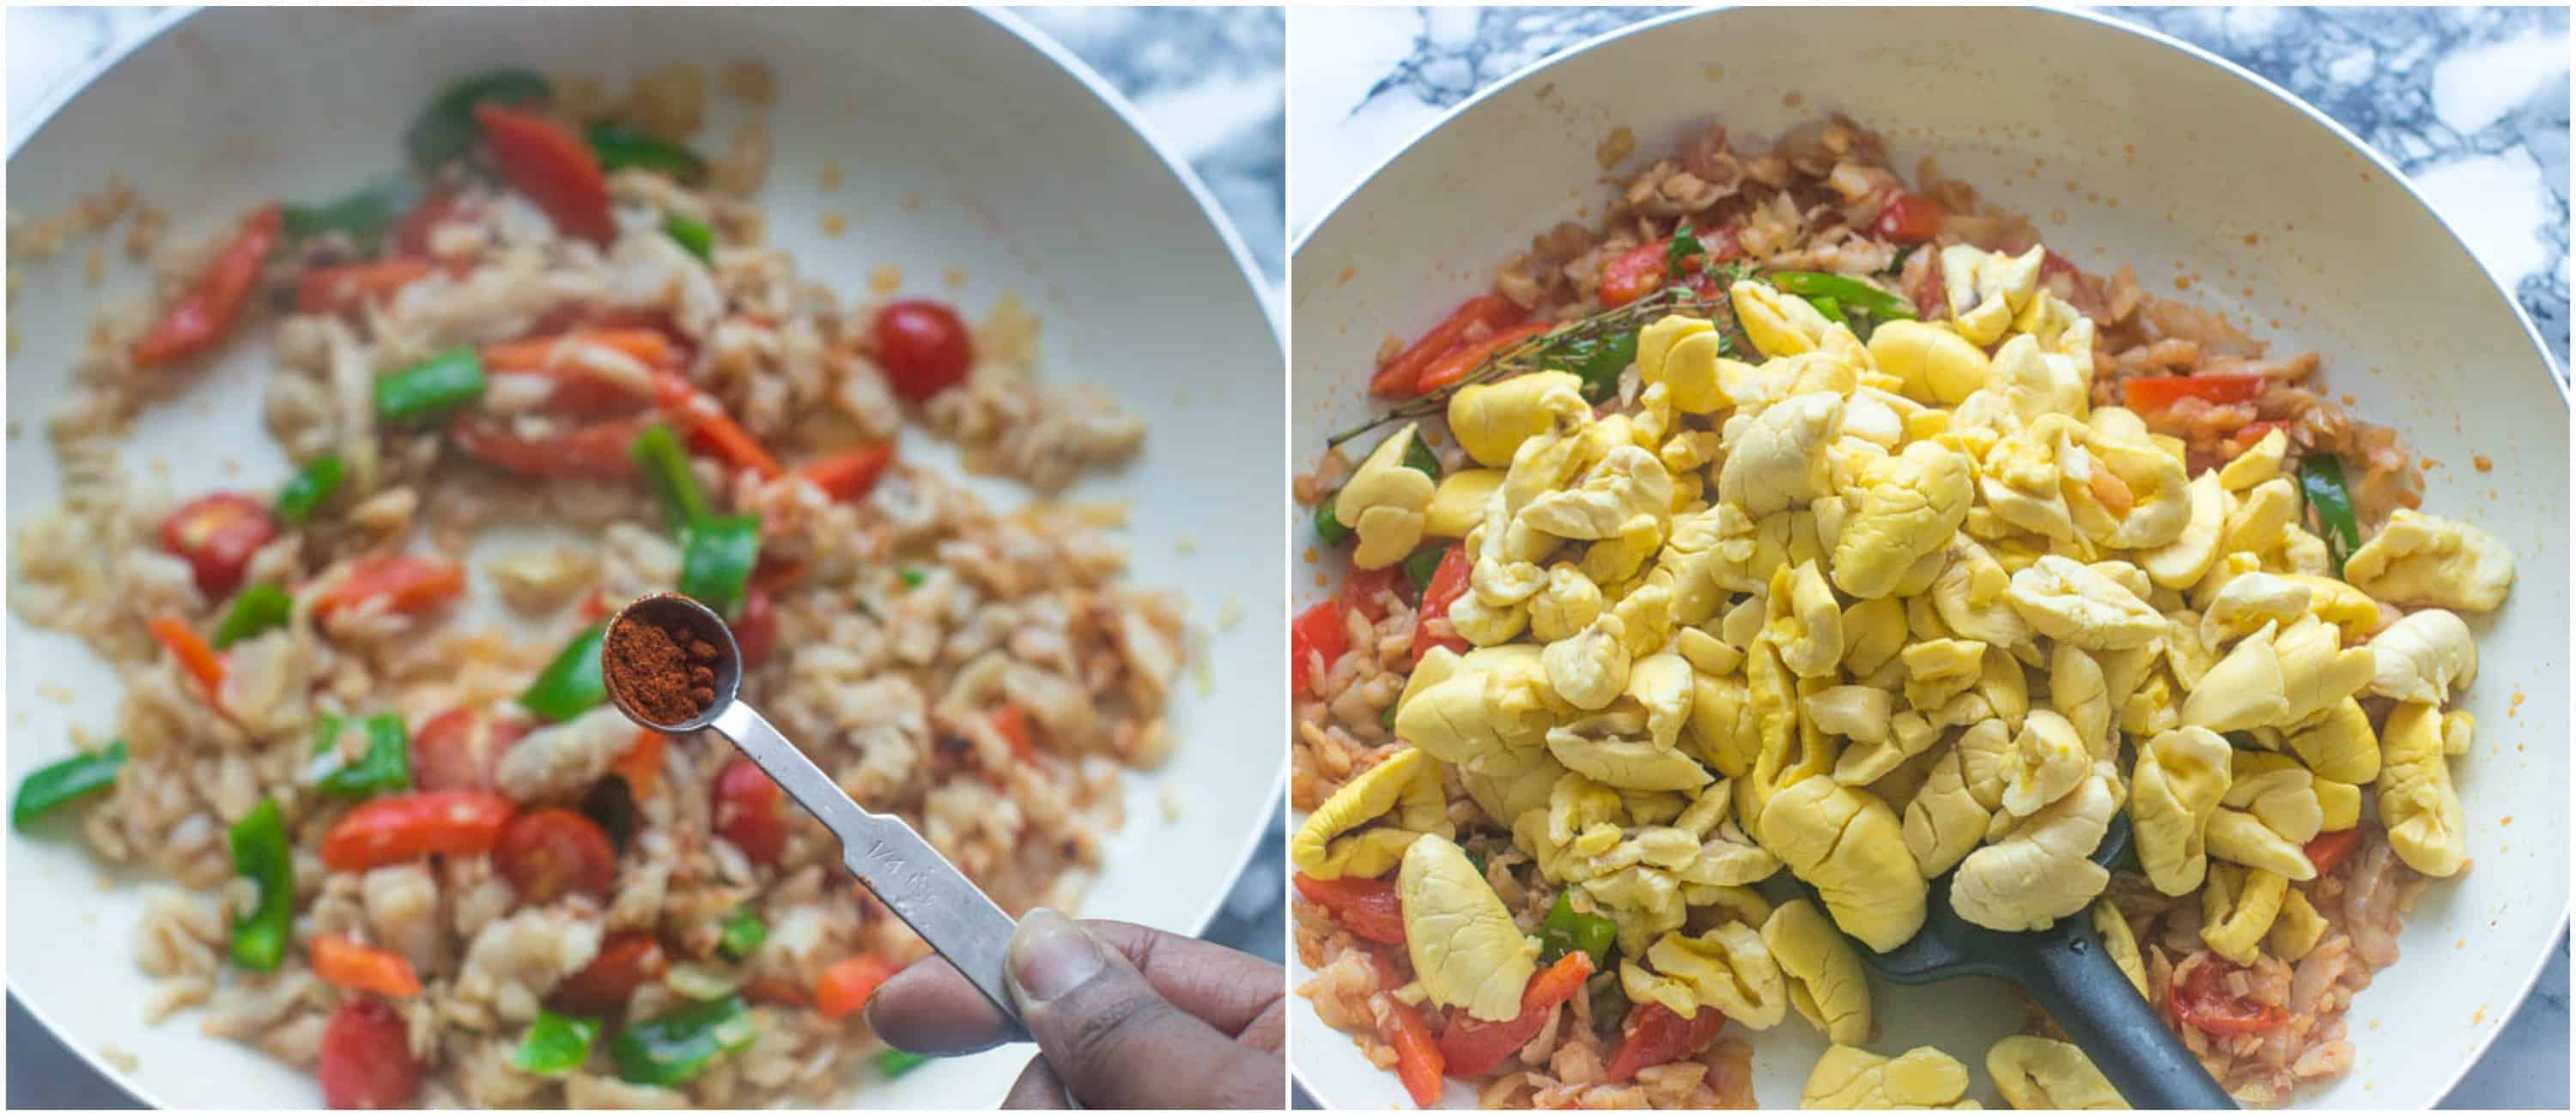 ackee and saltfish steps 7-8